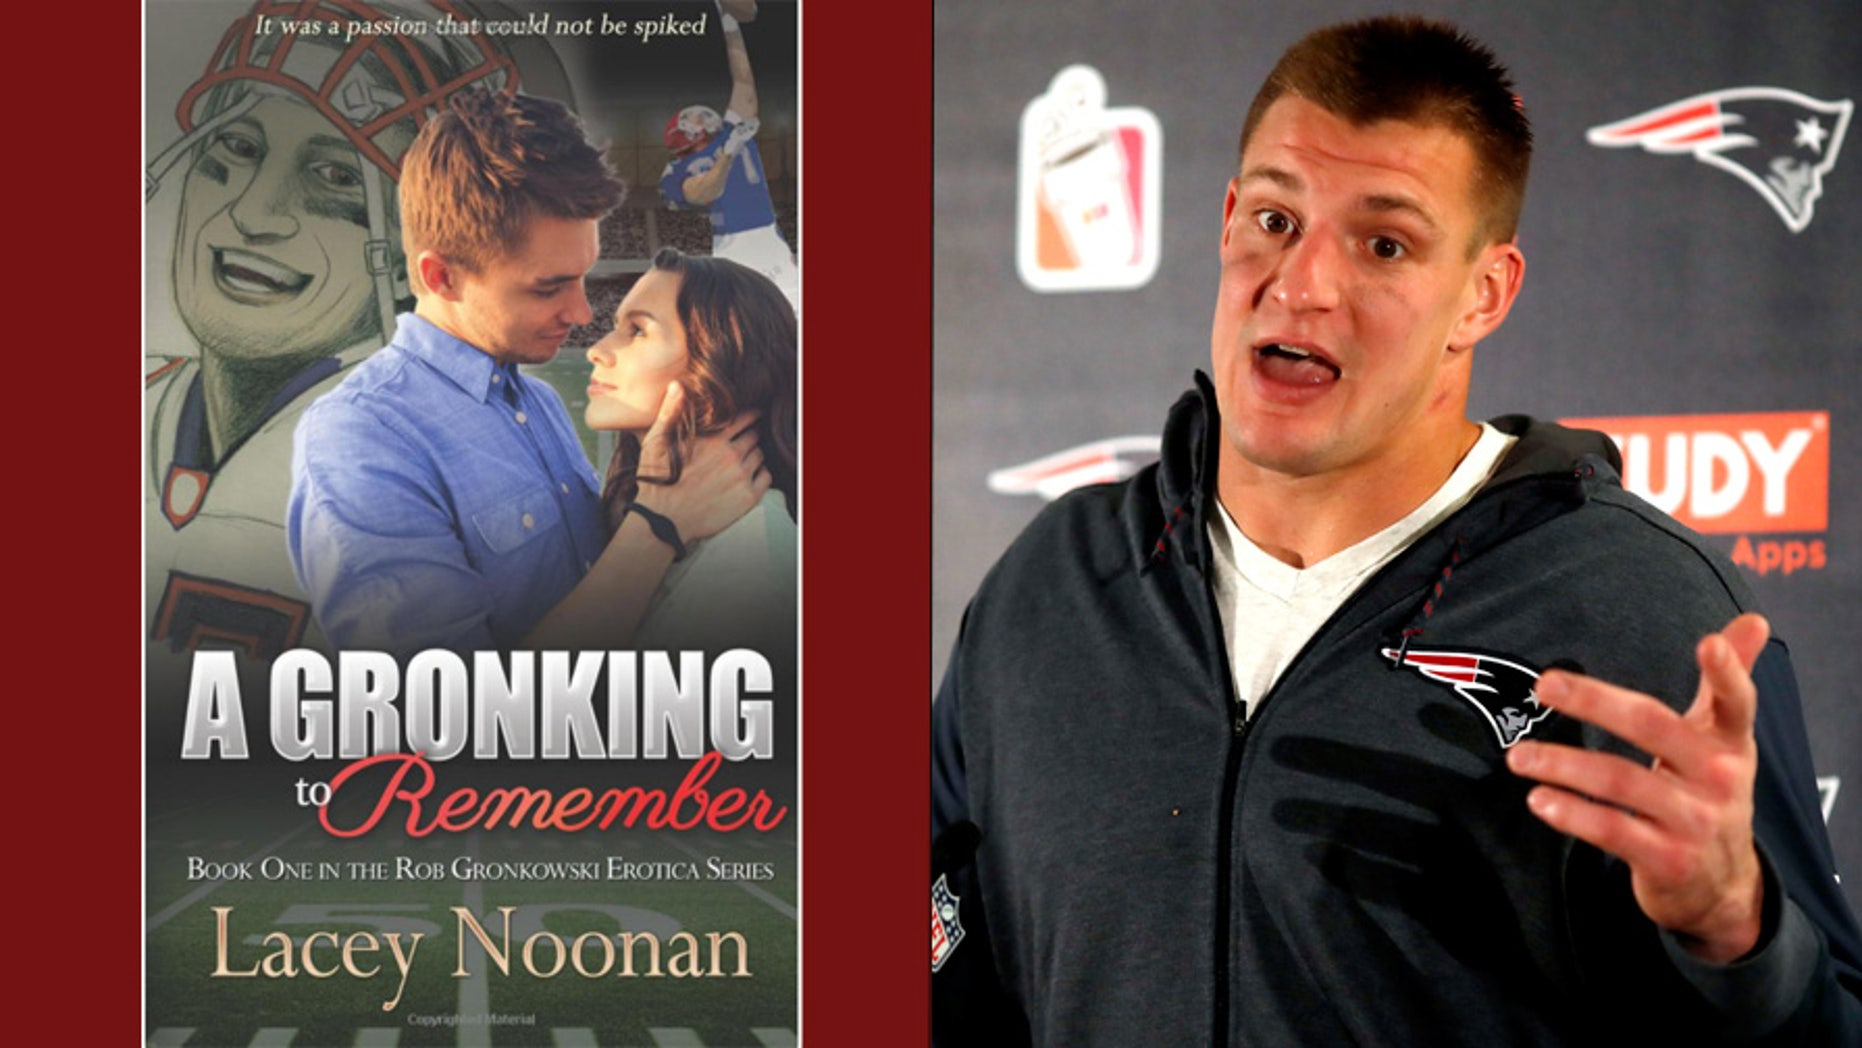 'A Gronking to Remember,' left, a work of erotic fiction inspired by New England Patriots player Rob Gronkowski, right, was the subject of a lawsuit over the cover art.